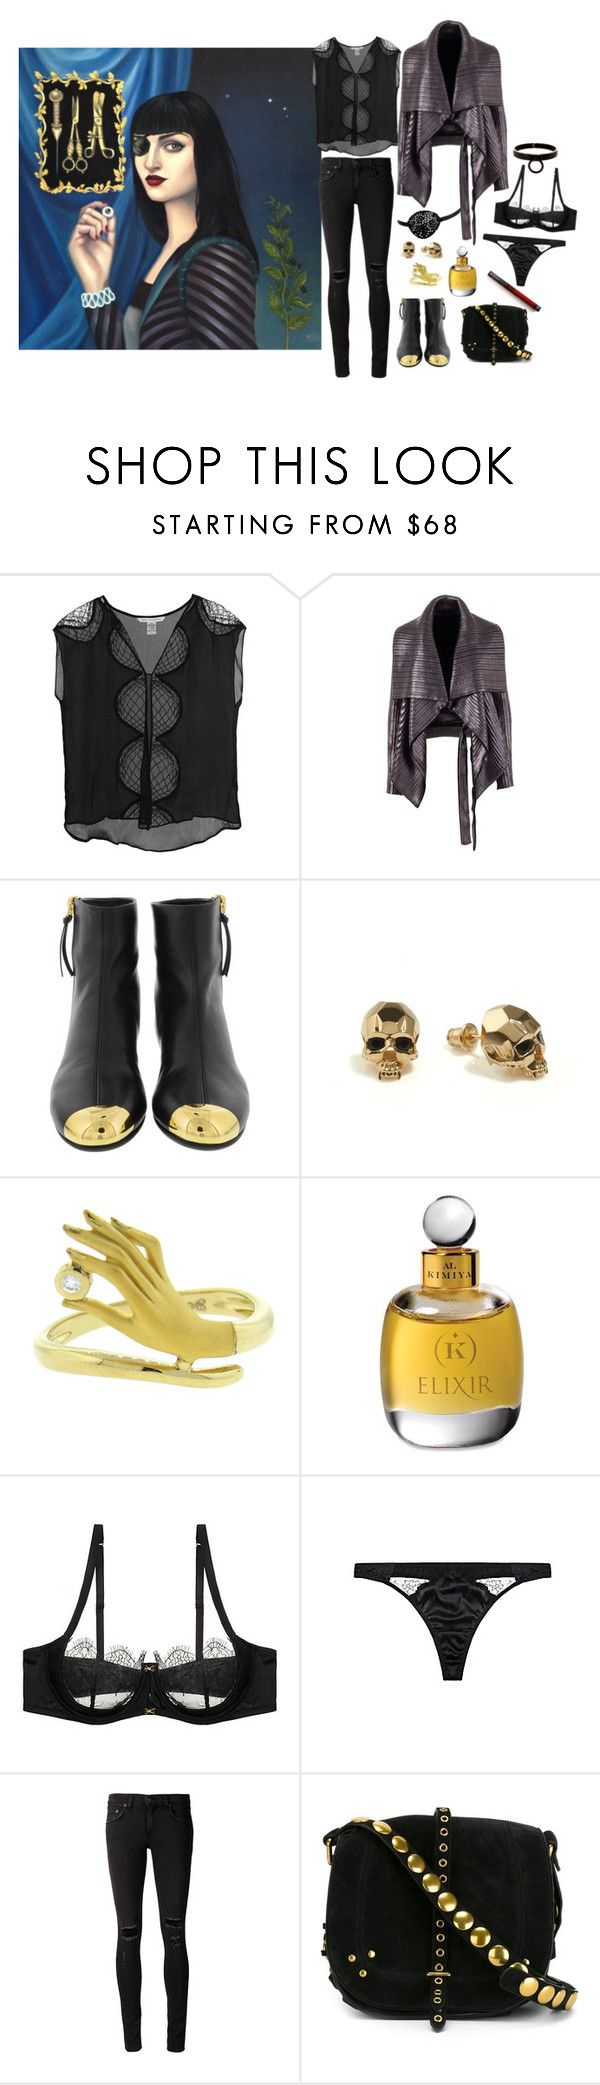 """Ocular Prosthesis"" by ghoulnextdoor ❤ liked on Polyvore featuring Diane Von Furstenberg, Gareth Pugh, Giuseppe Zanotti, Kasun, Carrera y Carrera, rag & bone/JEAN and Jérôme Dreyfuss"